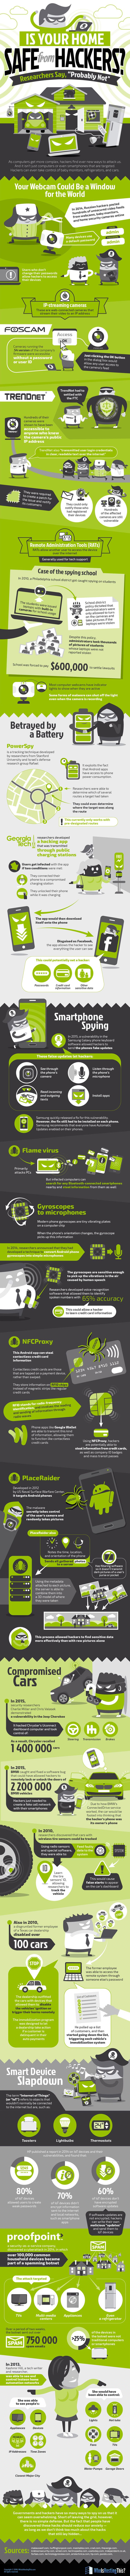 Is Your Home Safe From Hackers? #Infographic #Hacks #Security